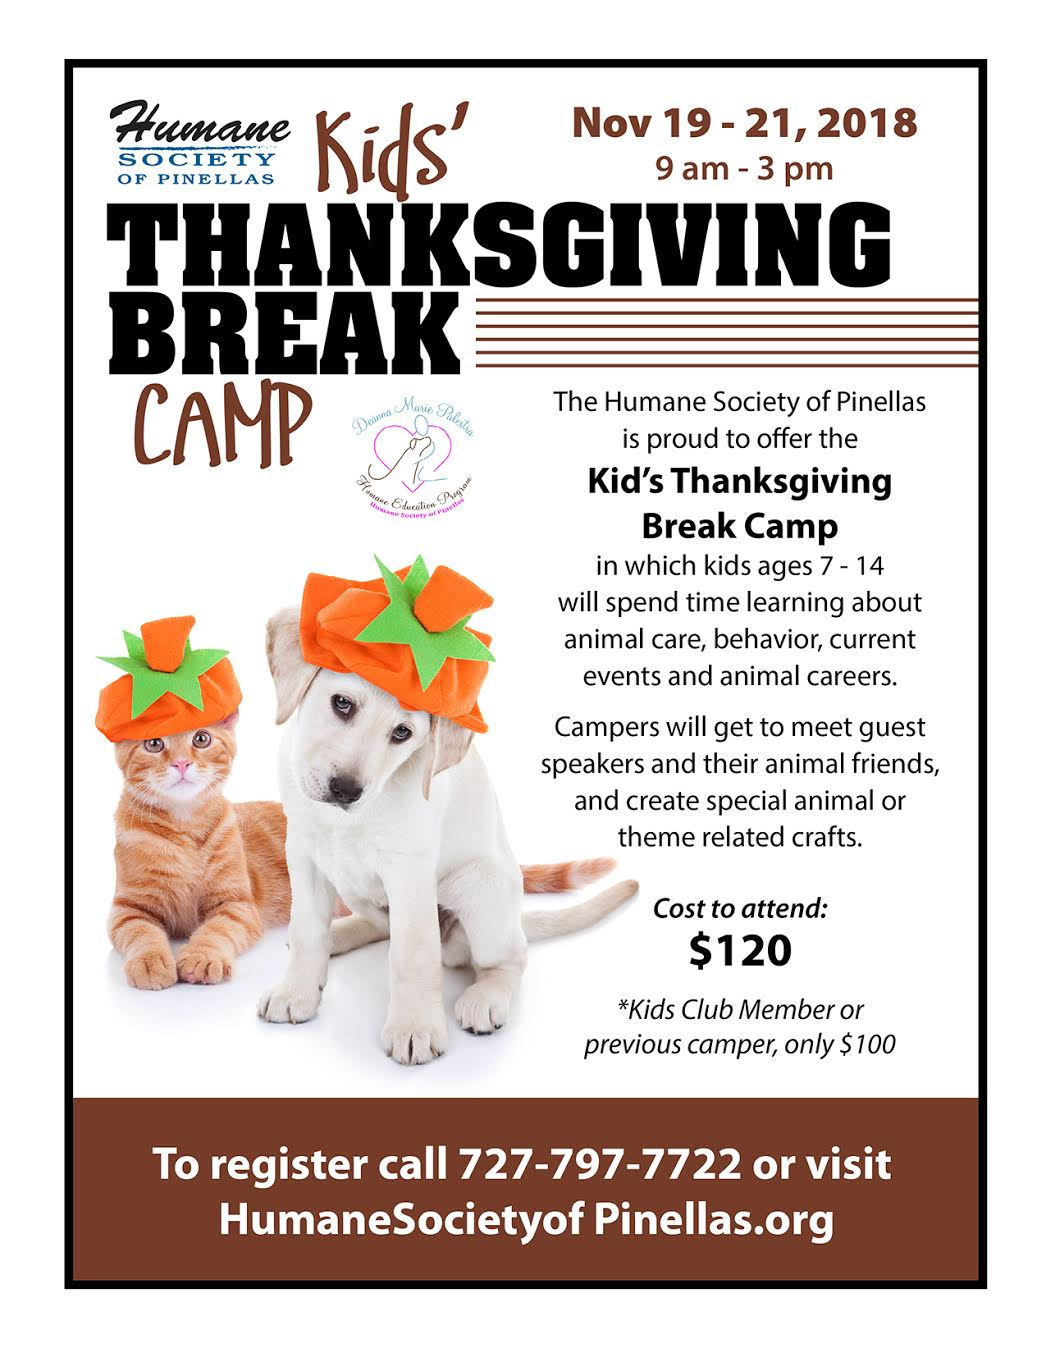 The Humane Society of Pinellas is proud to offer the Kids' Thanksgiving Break Camp in which kids aged s 7-14 will spend time learning about animal care, behavior, current events and animal careers.   Campers will get to meet guest speakers and their animal friends, and create special animal or theme related crafts.  Cost to attend: $120  *Kid Club Members or previous campers are only $100!